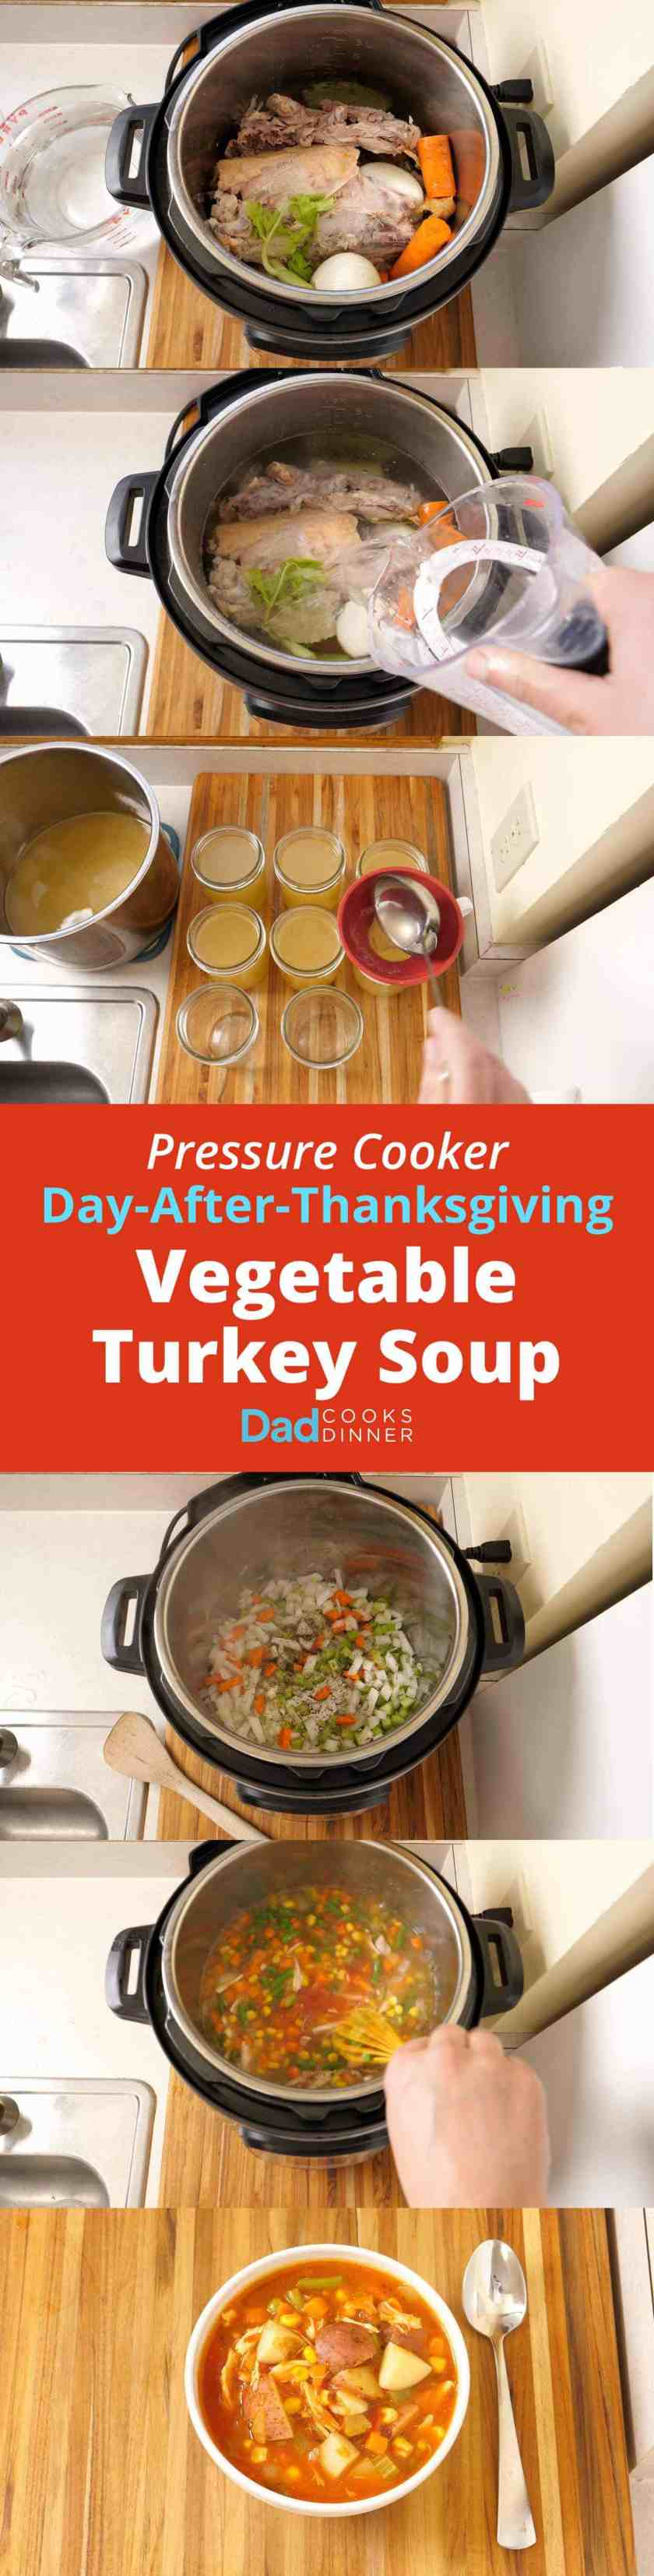 Pressure Cooker Day-After-Thanksgiving Vegetable Turkey Soup. A great way to use that leftover turkey carcass - and any other vegetables you have on hand - to make soup from scratch in your pressure cooker. | DadCooksDinner.com